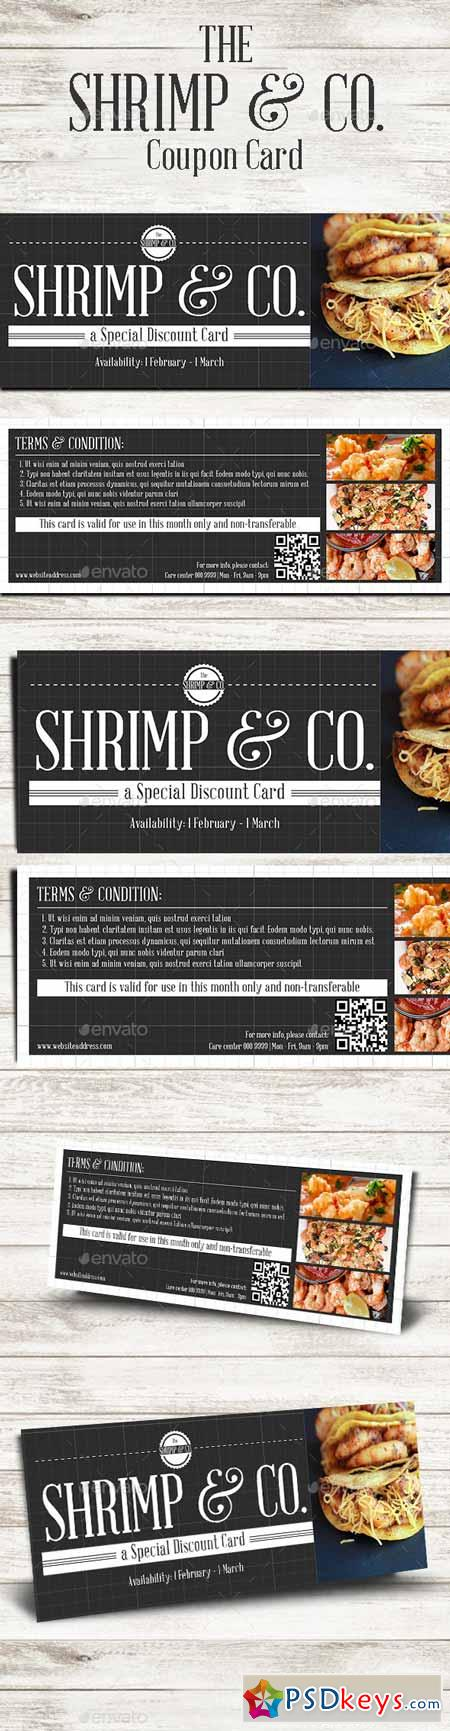 Seafood Cafe Coupon Card 10366390